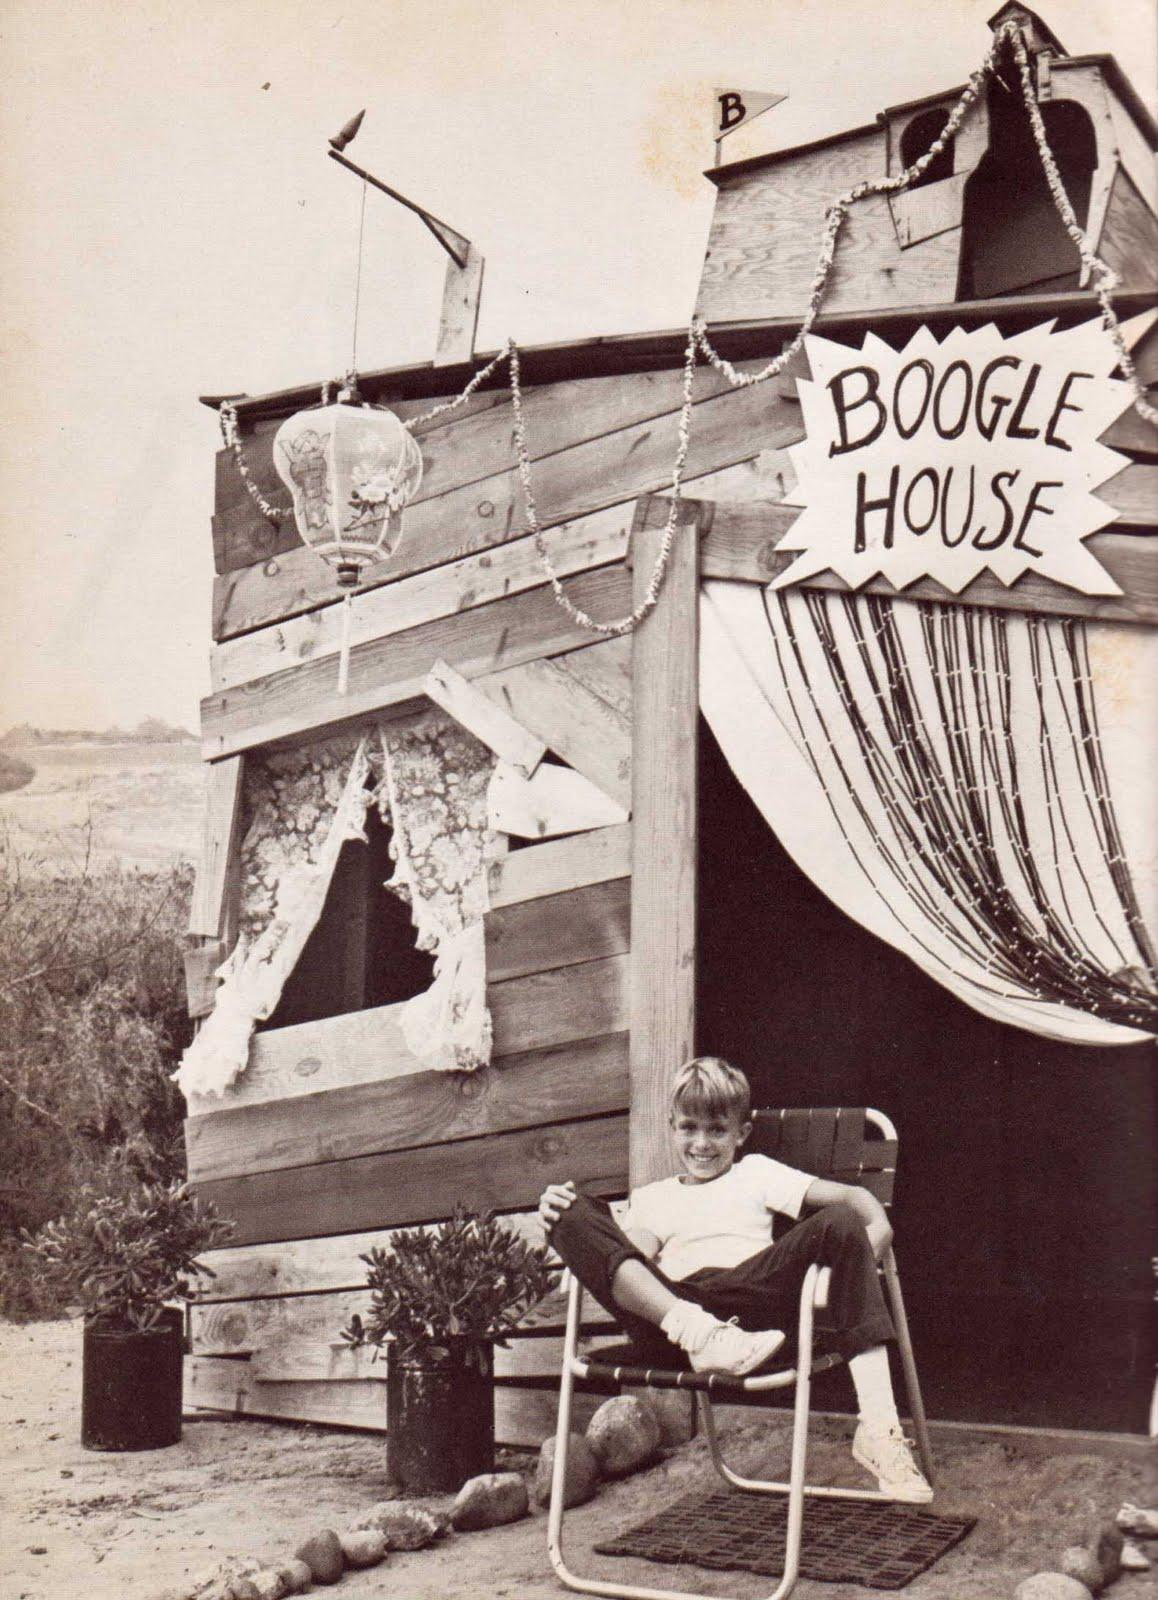 The Boogle House